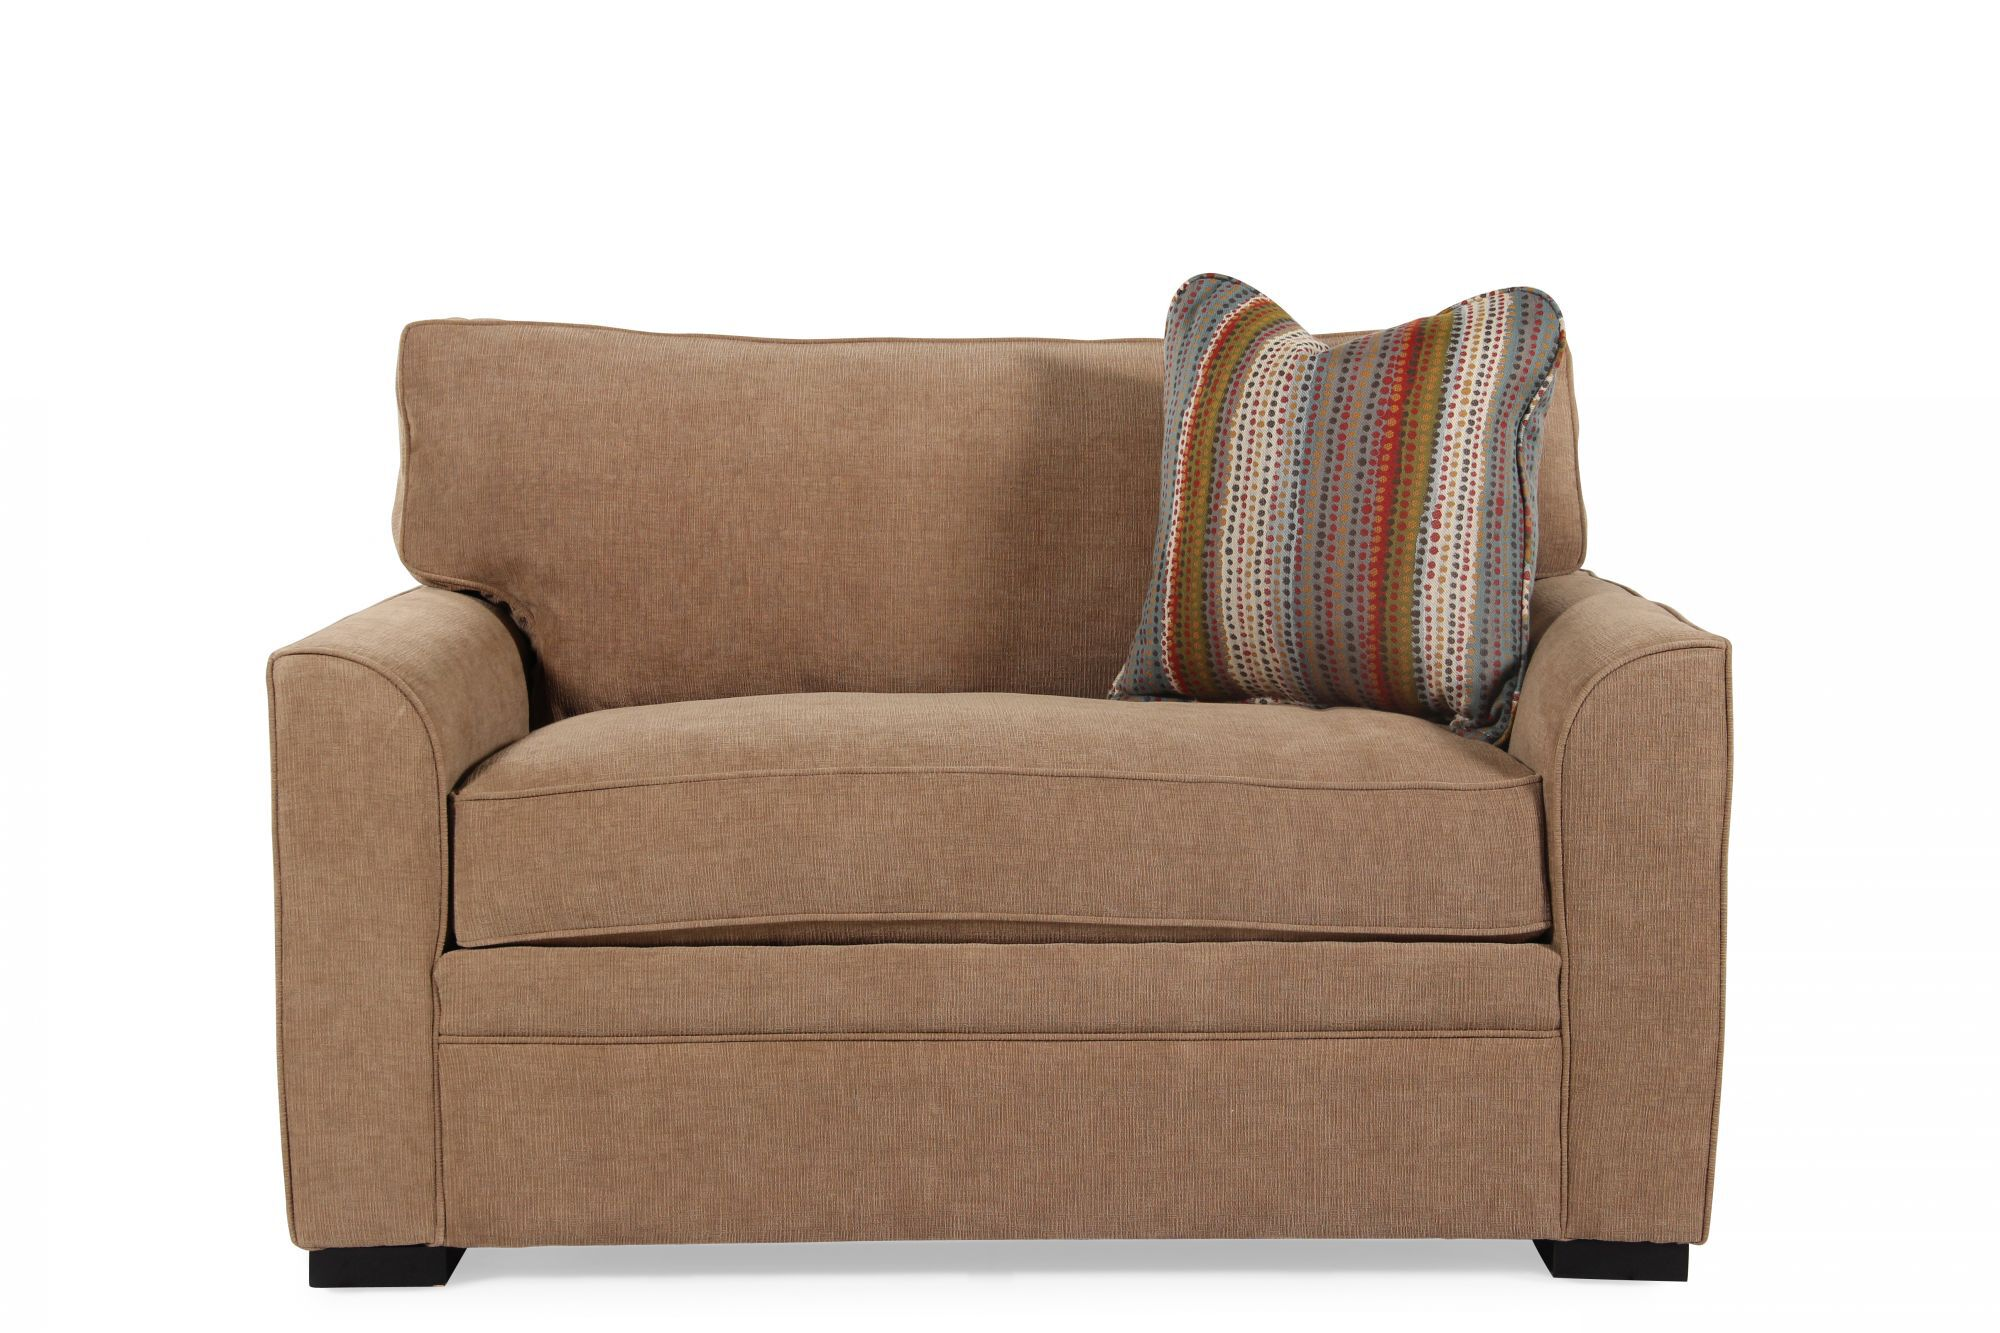 jonathan louis sofa bed how to make a slipcover for blissful brown chairbed memory foam sleeper